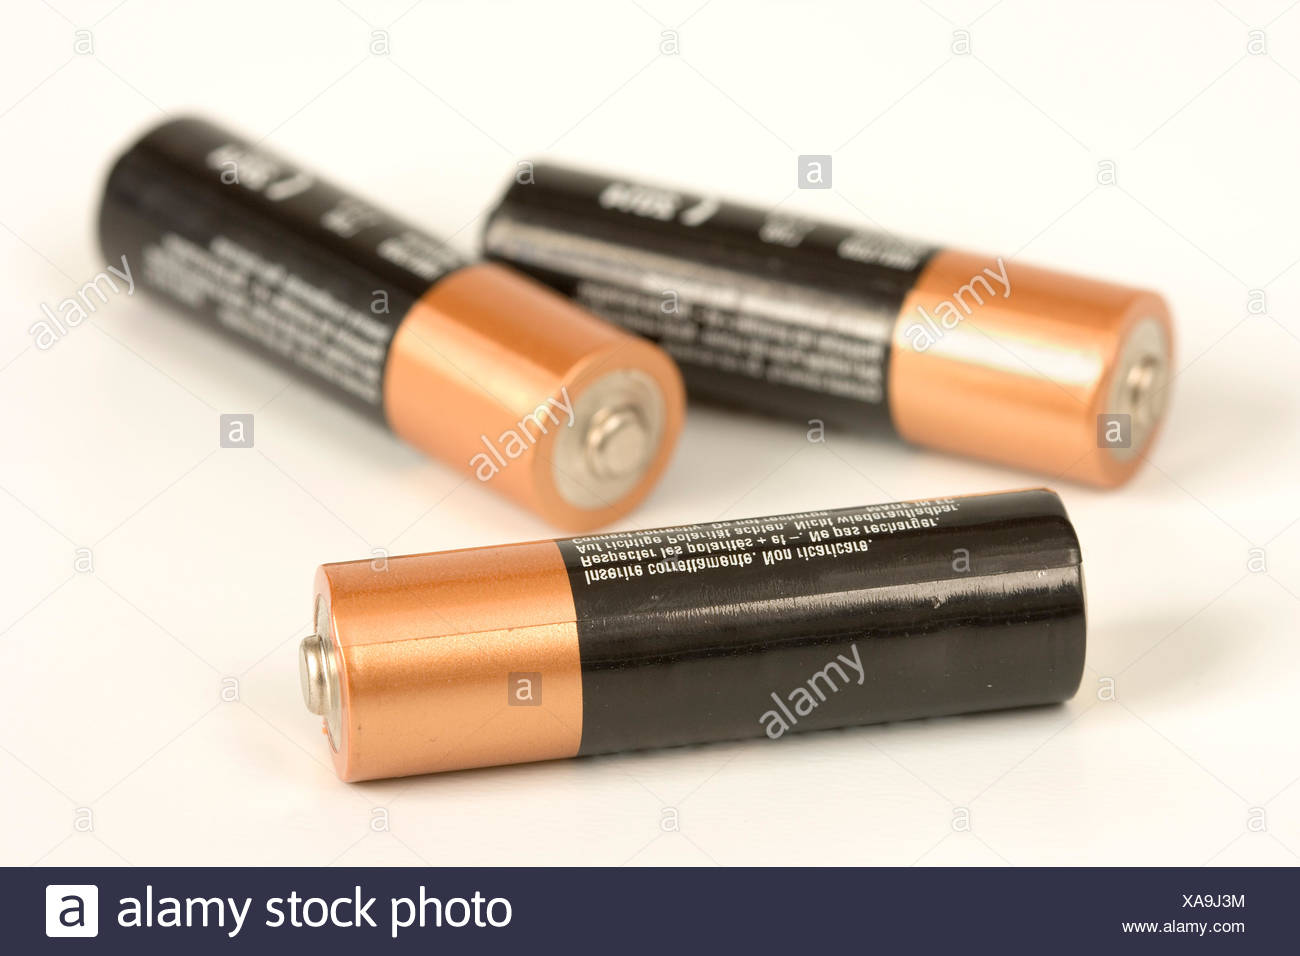 voltage battery charges - Stock Image